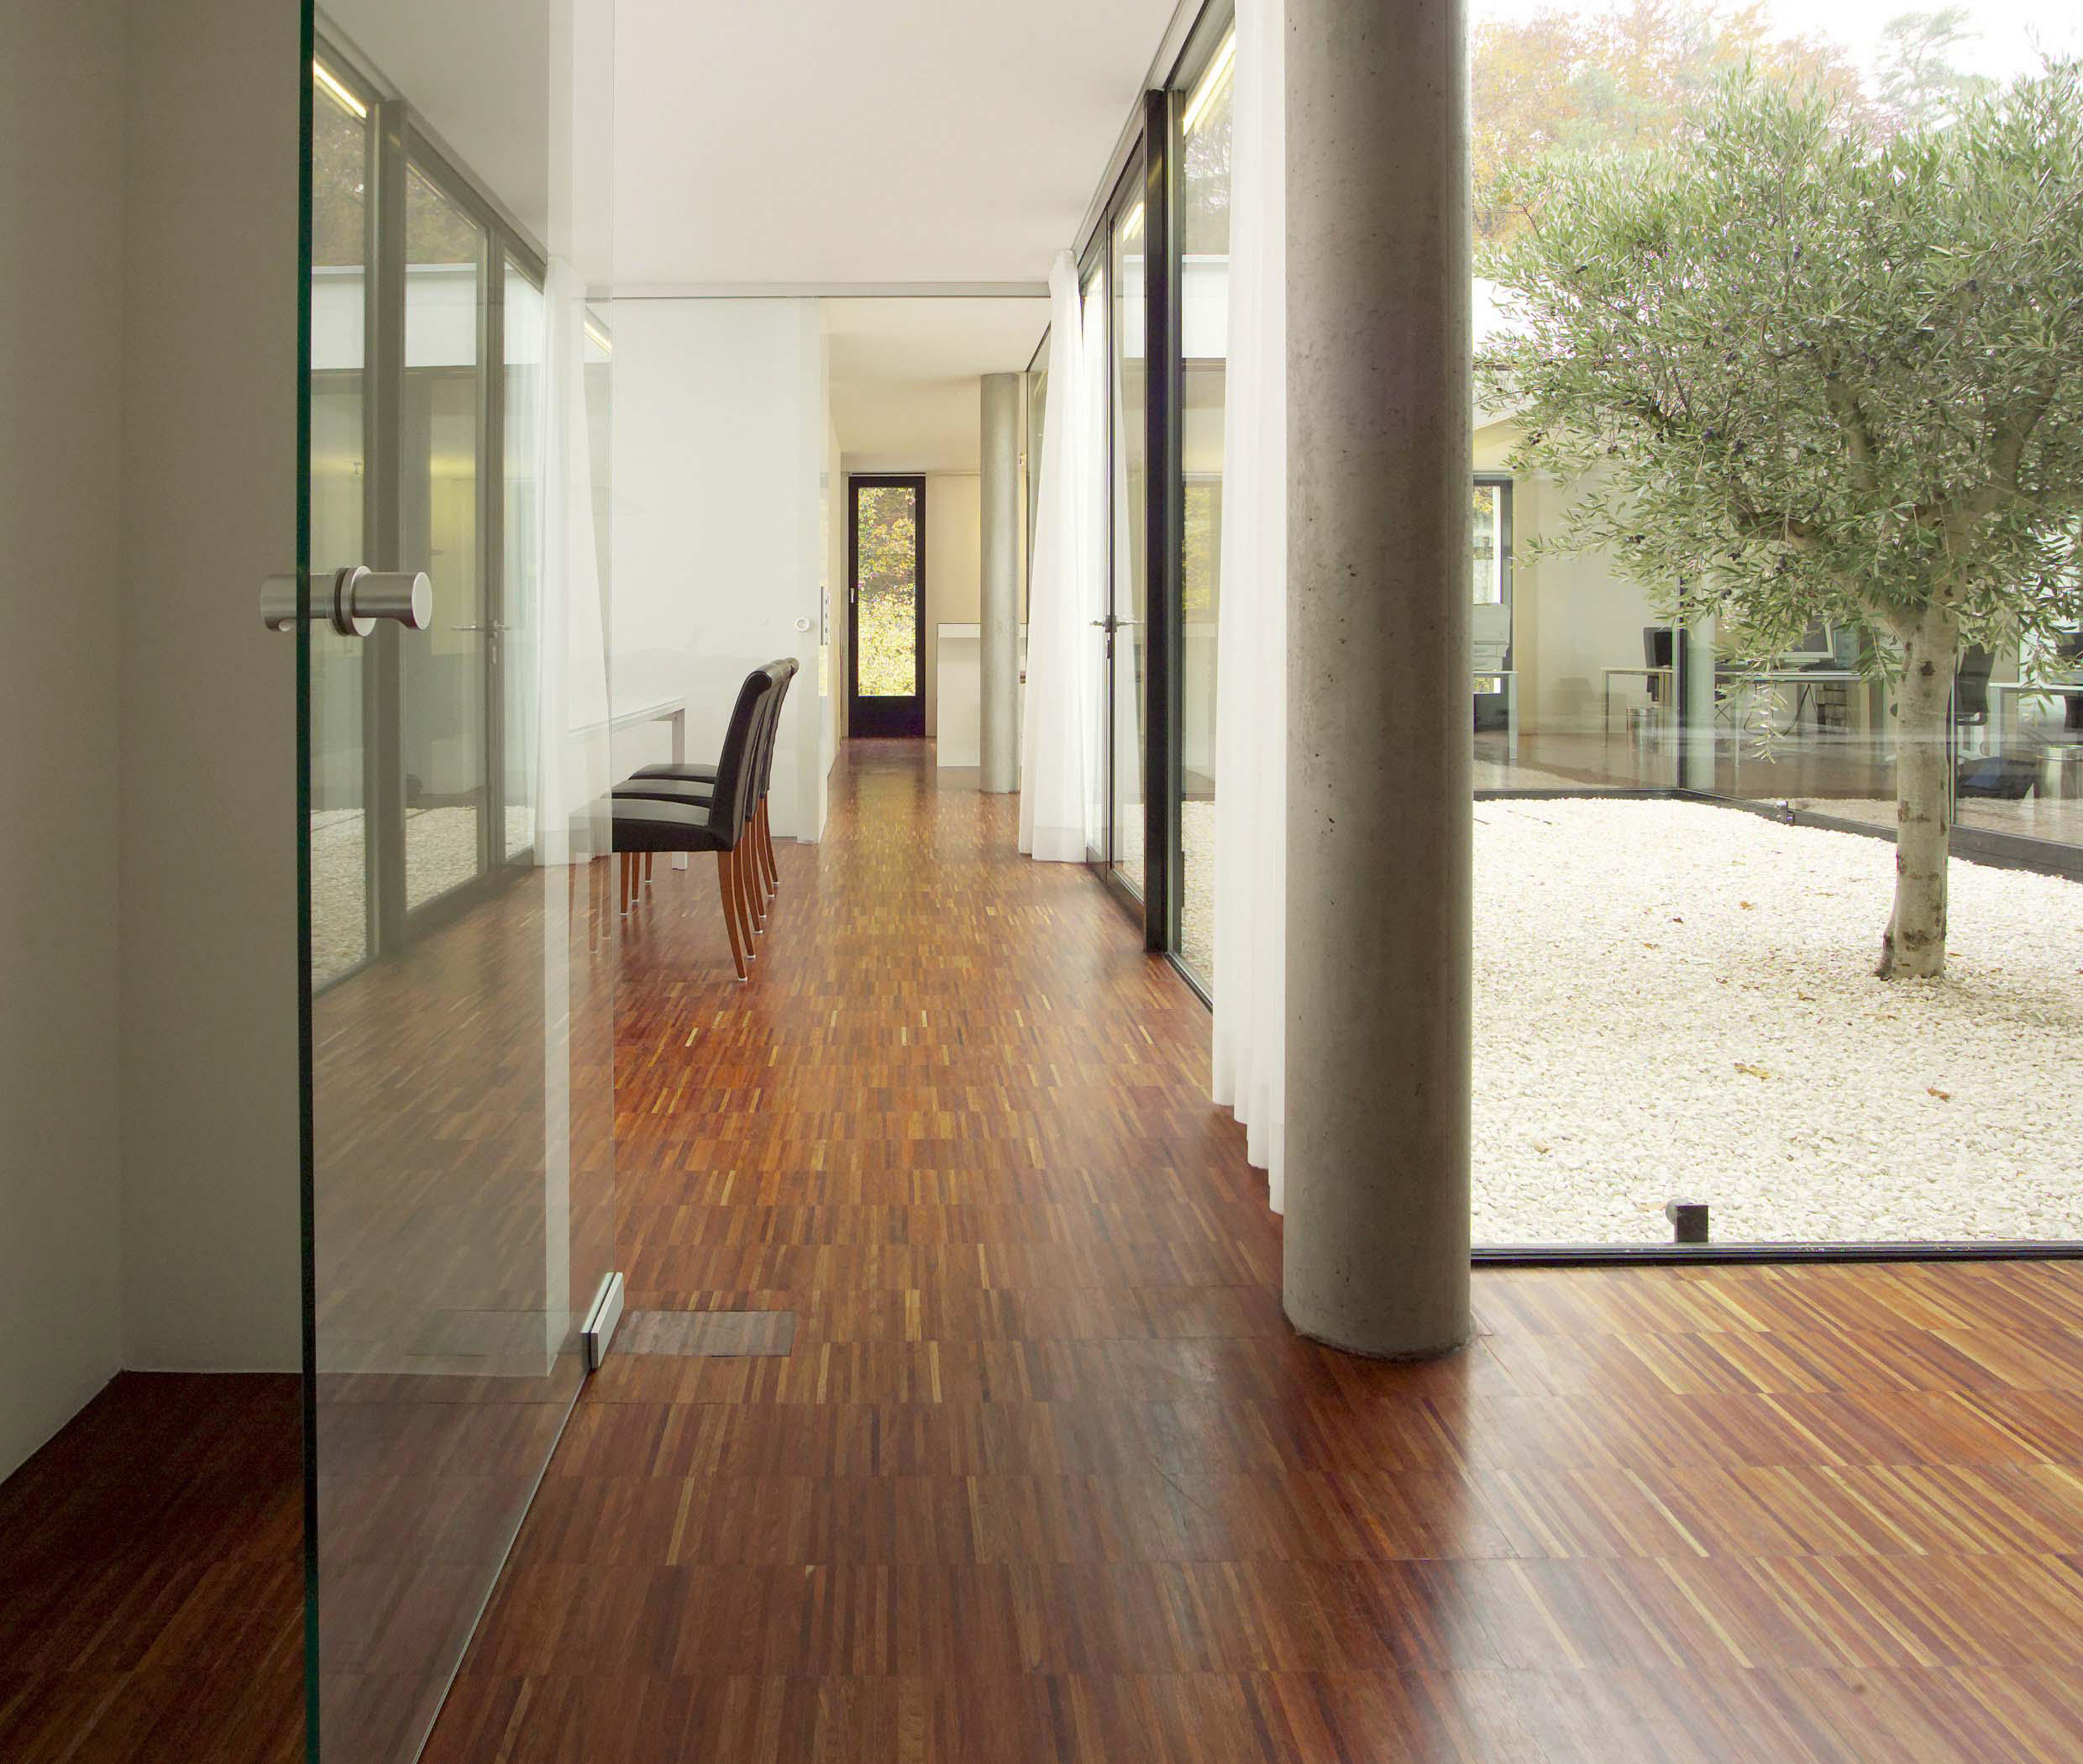 Edge Grain Fumed Oak Wood Flooring From Kaswell Flooring